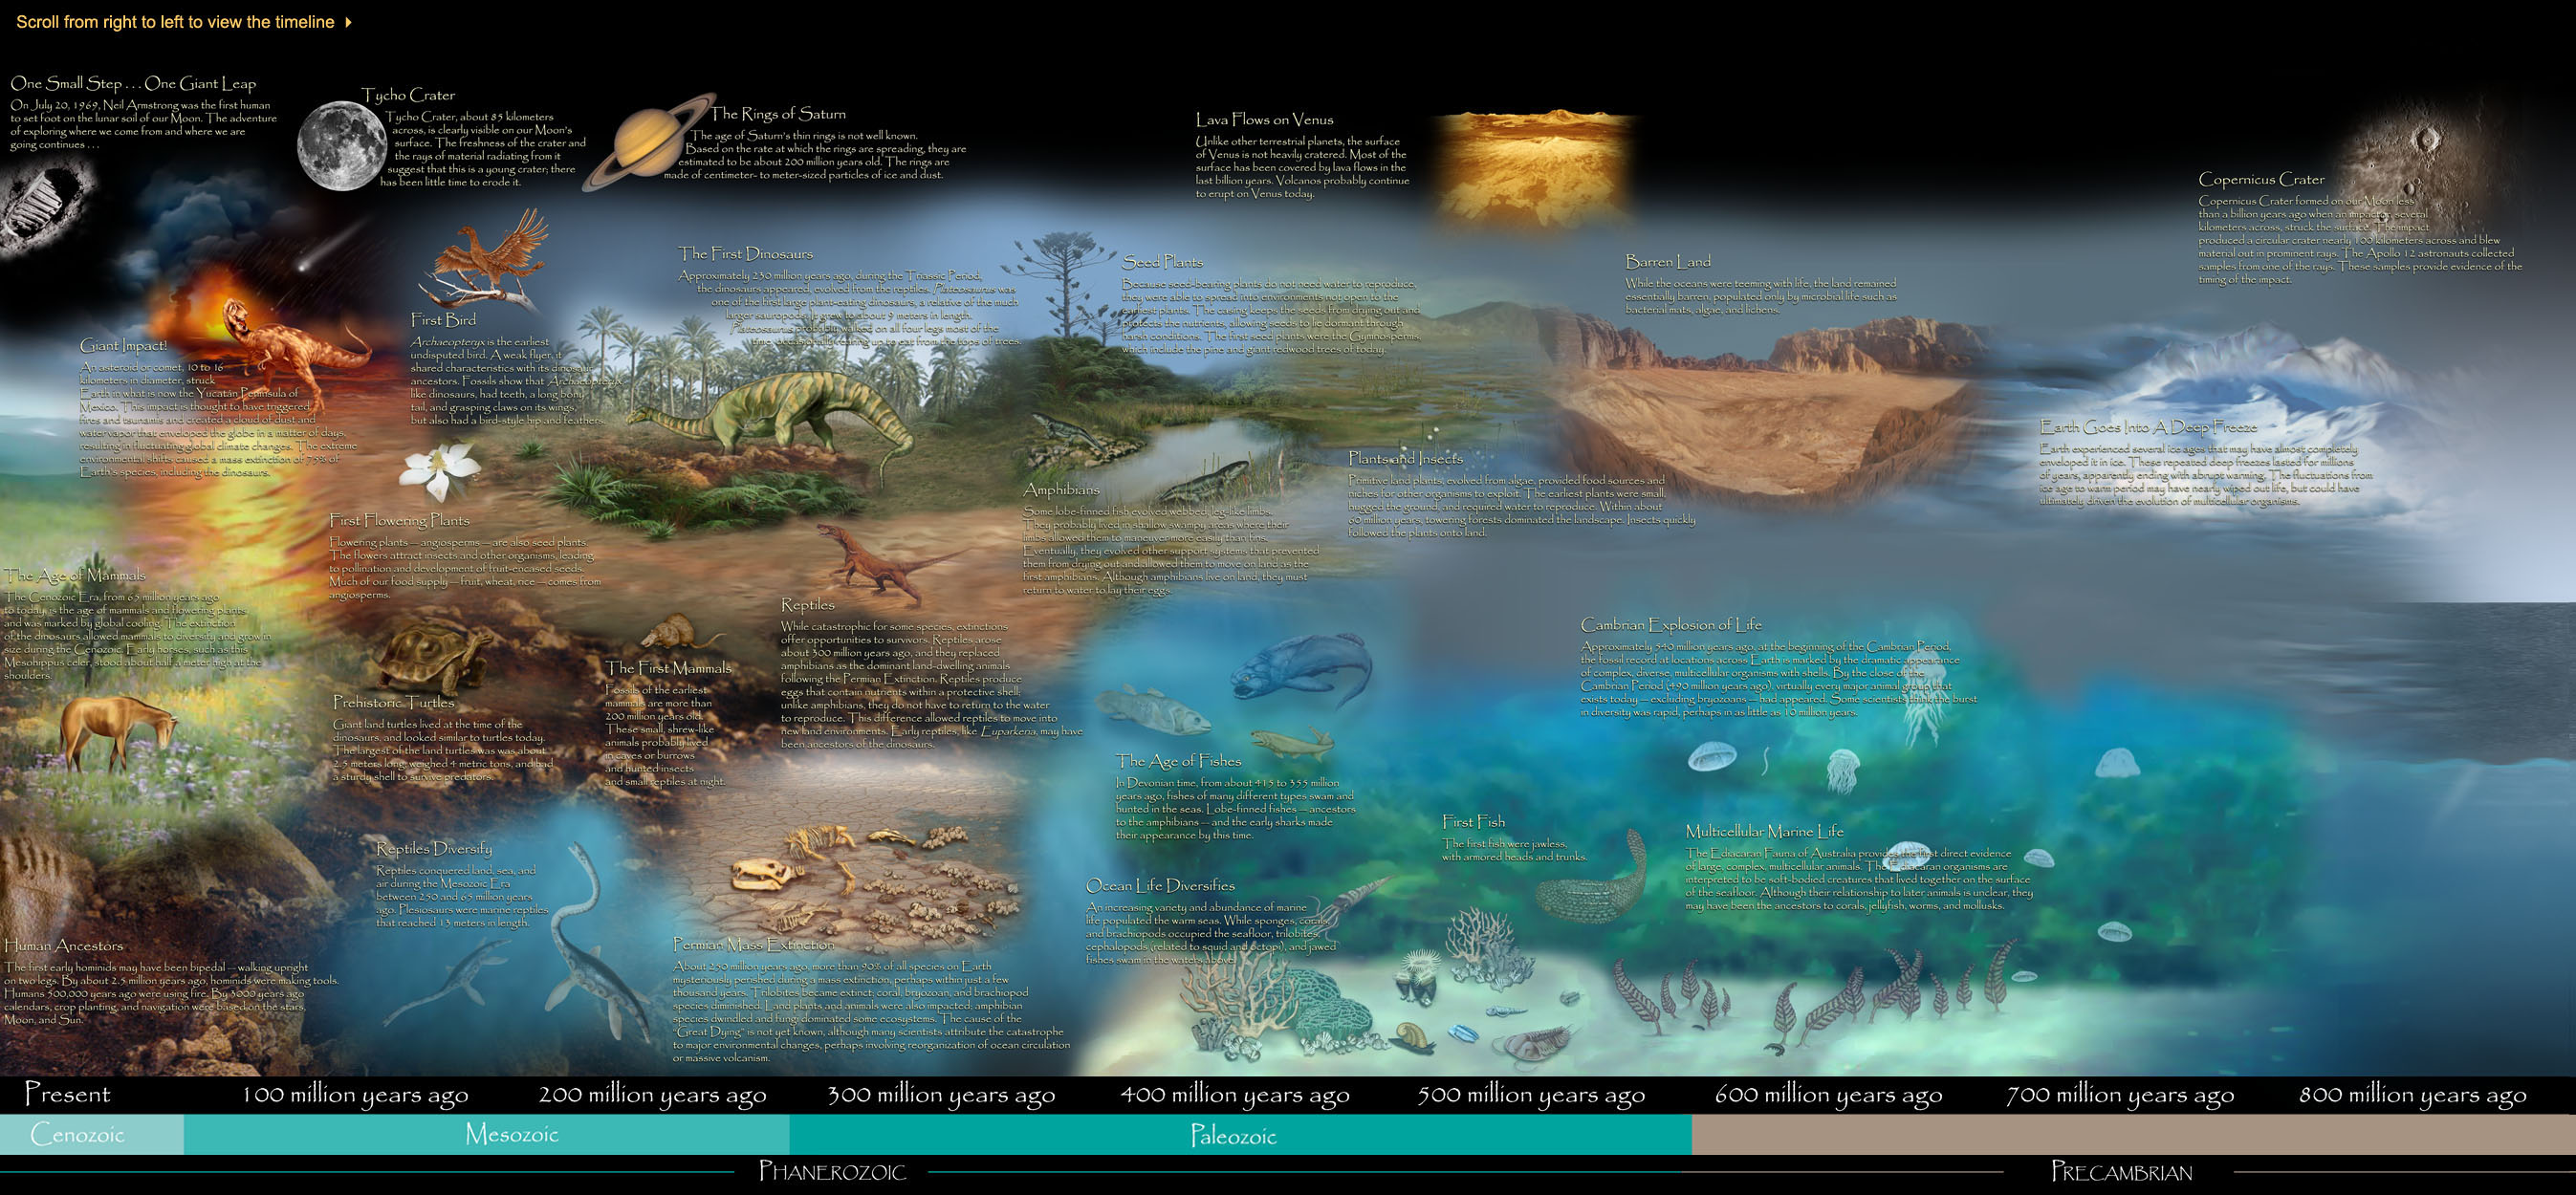 the wall of time evolution of the solar system 800 million years ago present